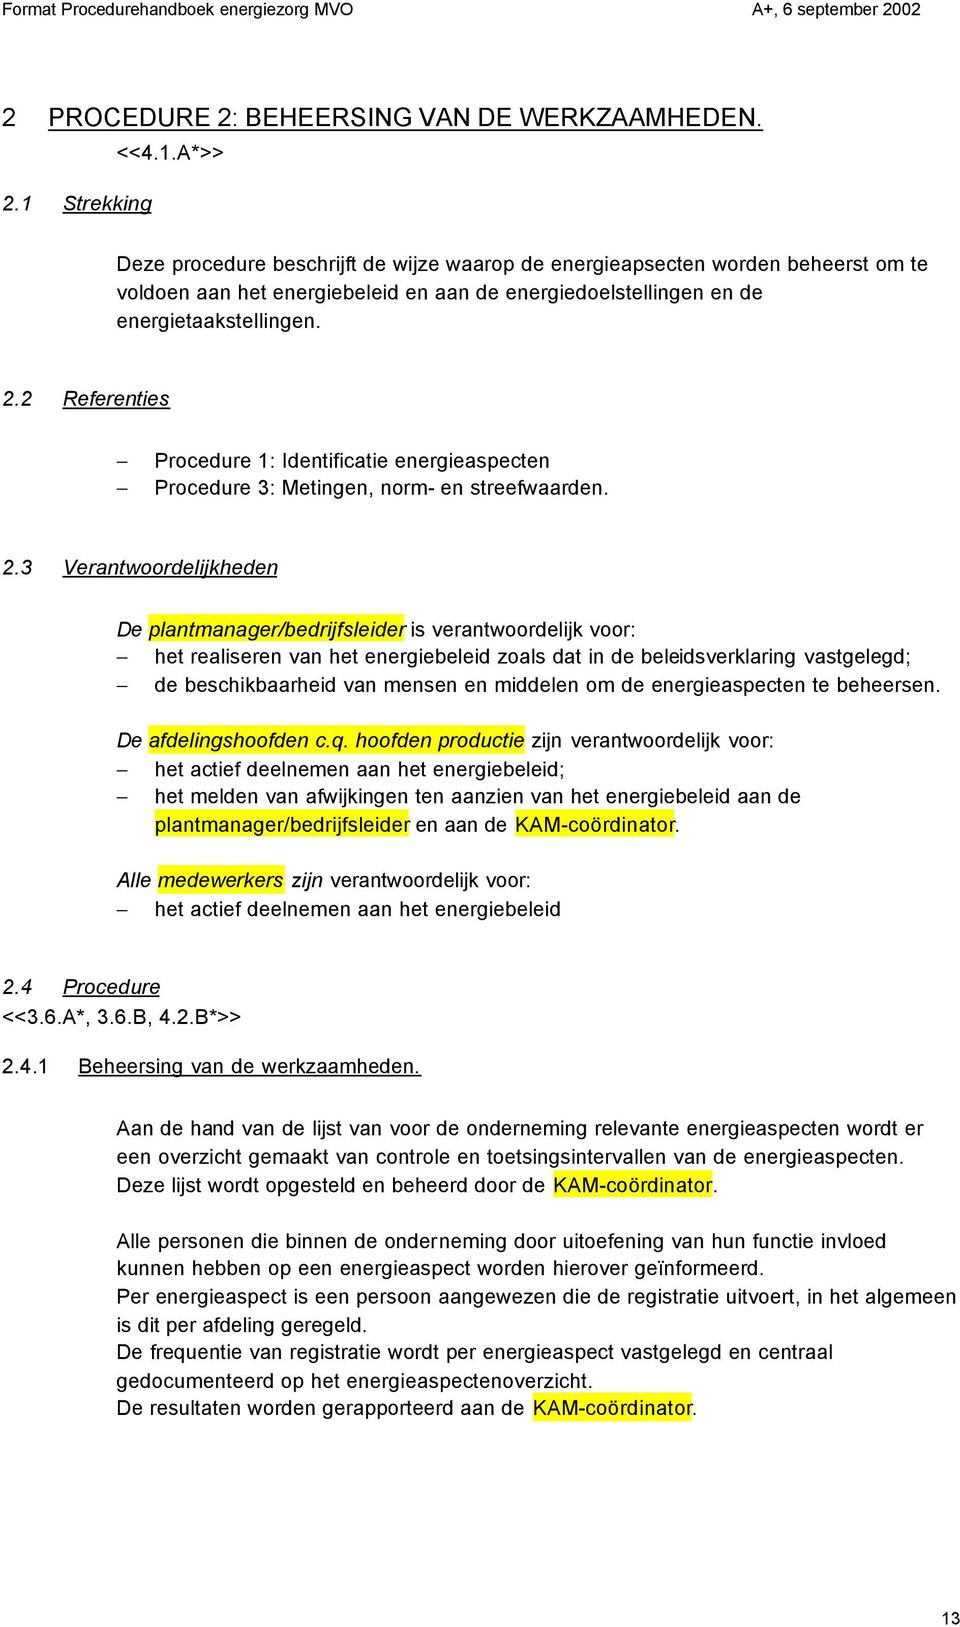 2 Referenties Procedure 1: Identificatie energieaspecten Procedure 3: Metingen, norm- en streefwaarden. 2.